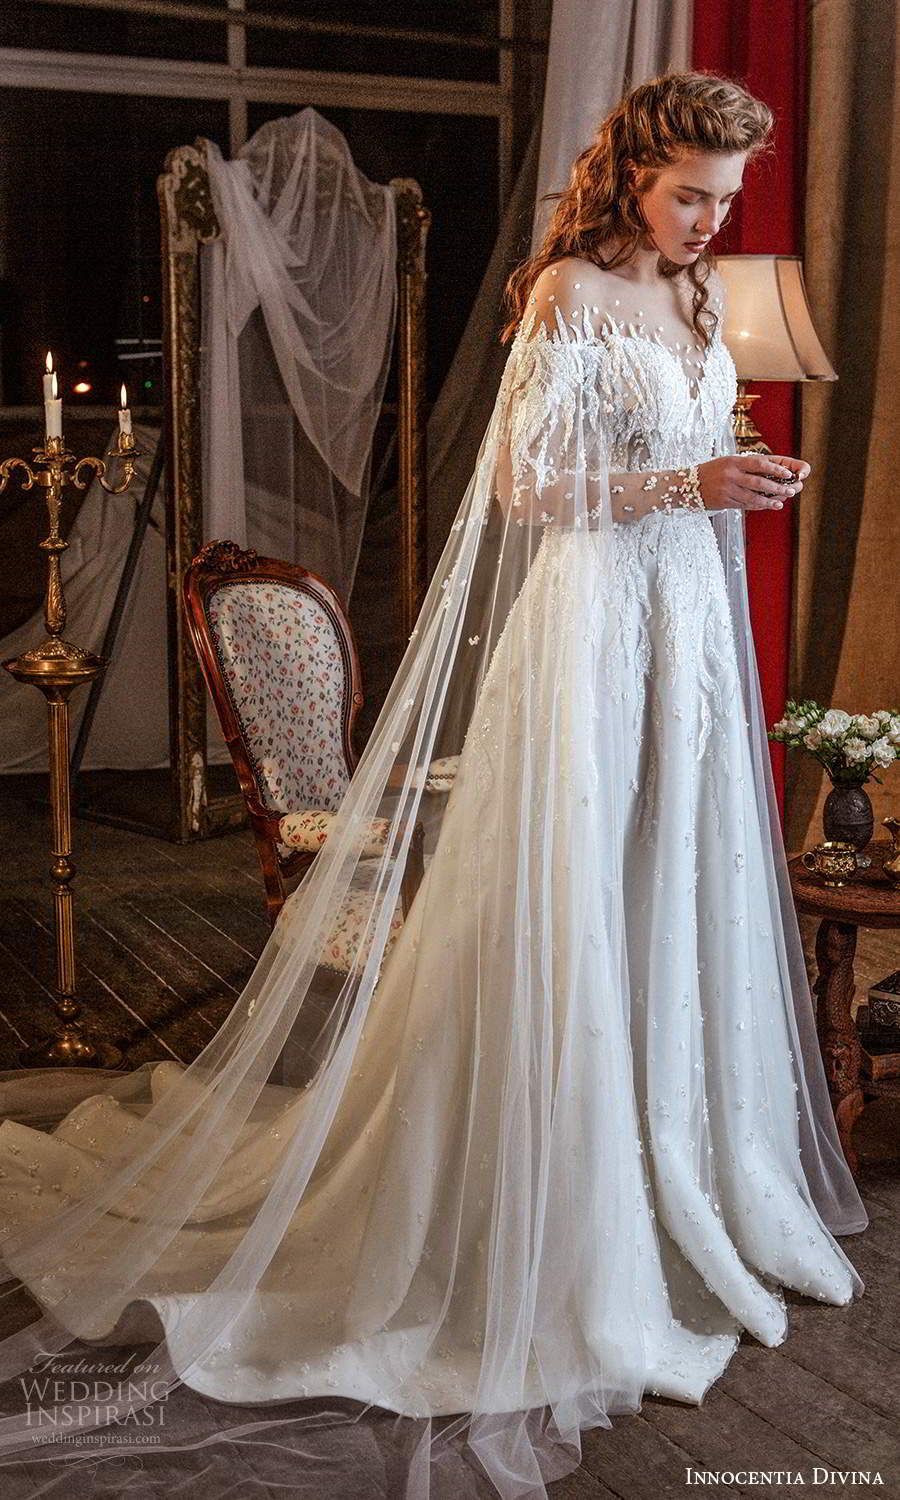 innocentia divina 2021 bridal illusion long flare sleeves sweetheart neckline fully embellished a line ball gown wedding dress chapel train (14) mv